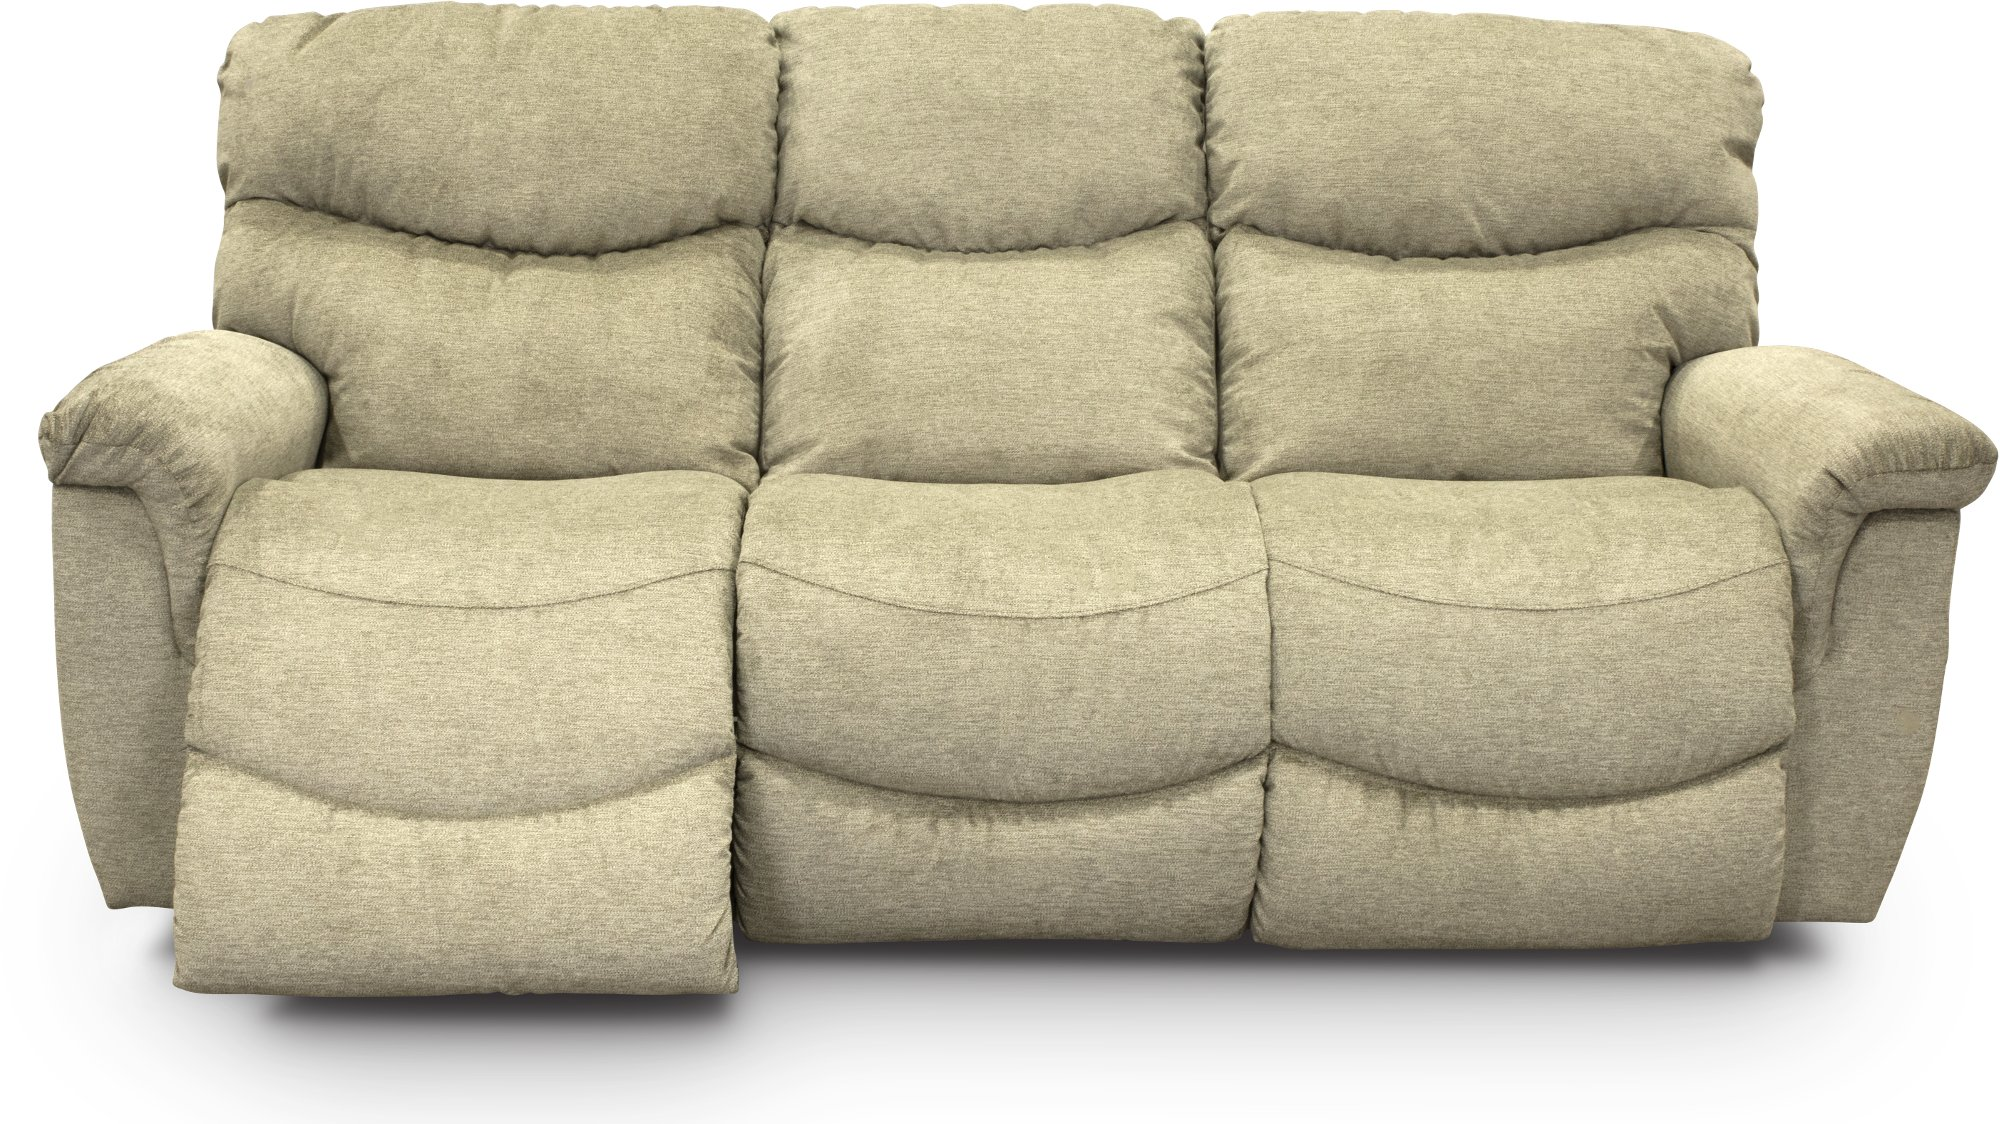 Green Manual Full Reclining Sofa Console Loveseat James Rc Willey Furniture Store